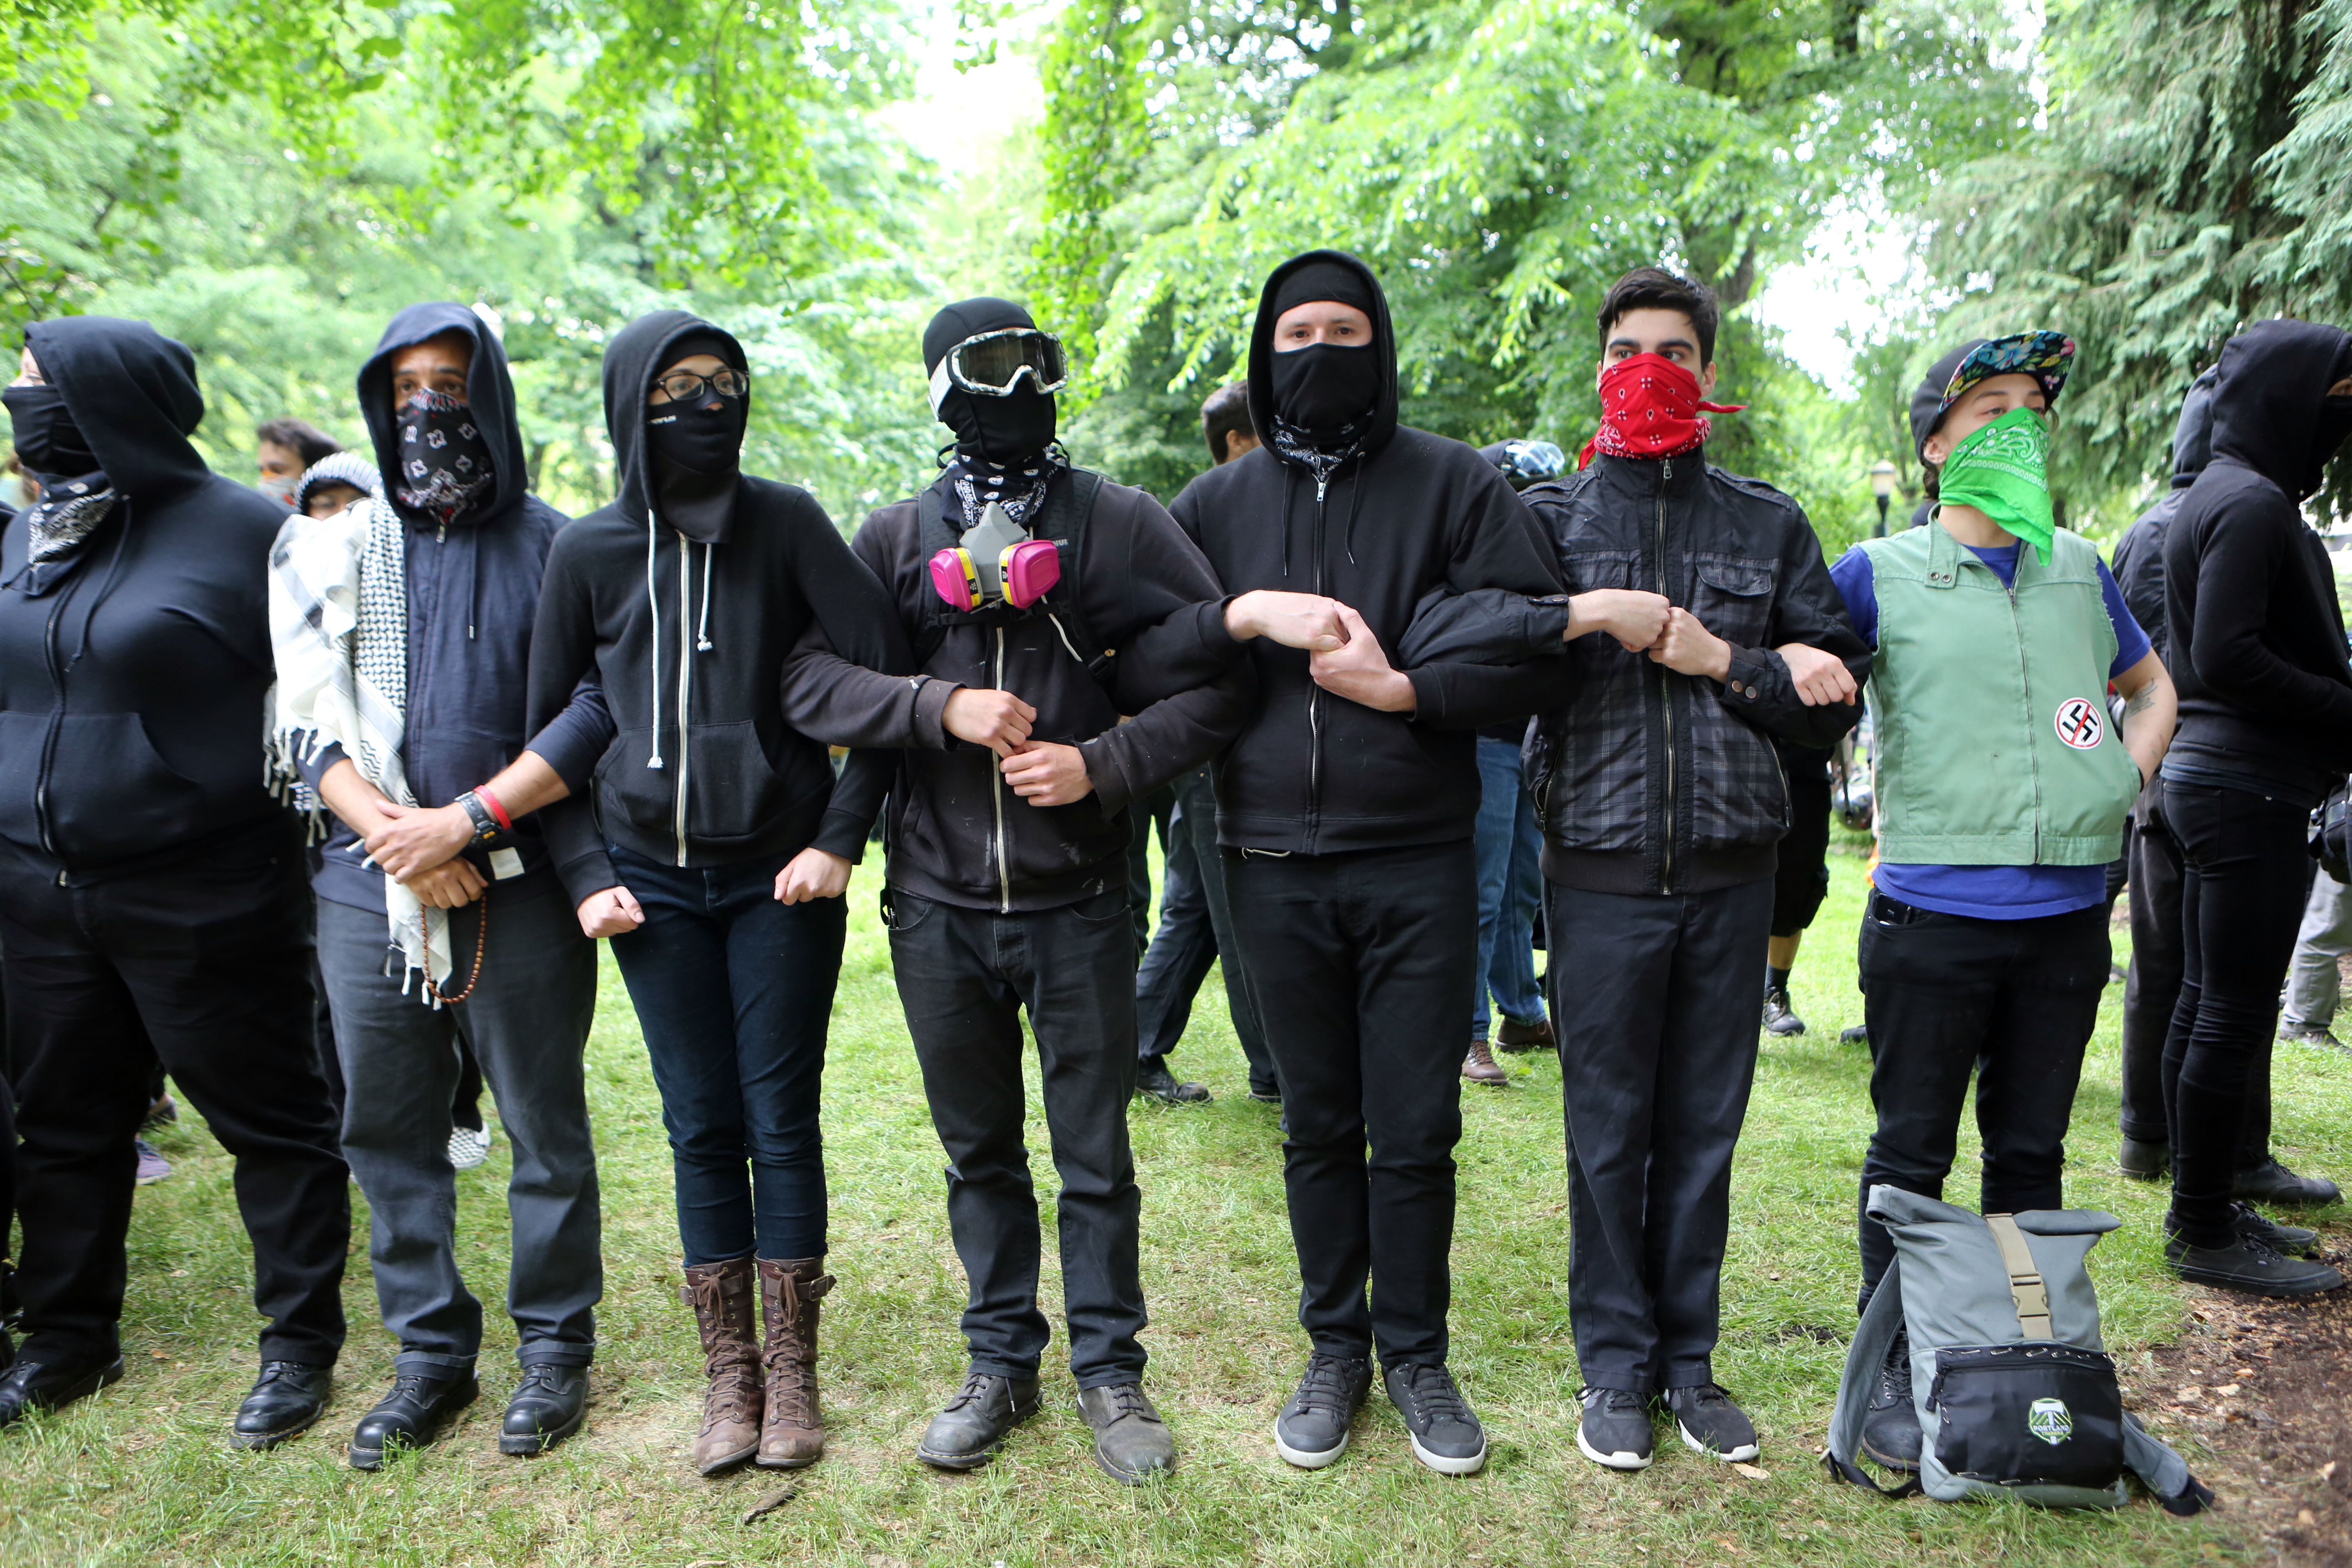 """""""They have no allegiance to liberal democracy"""": an expert on antifa explains the group"""